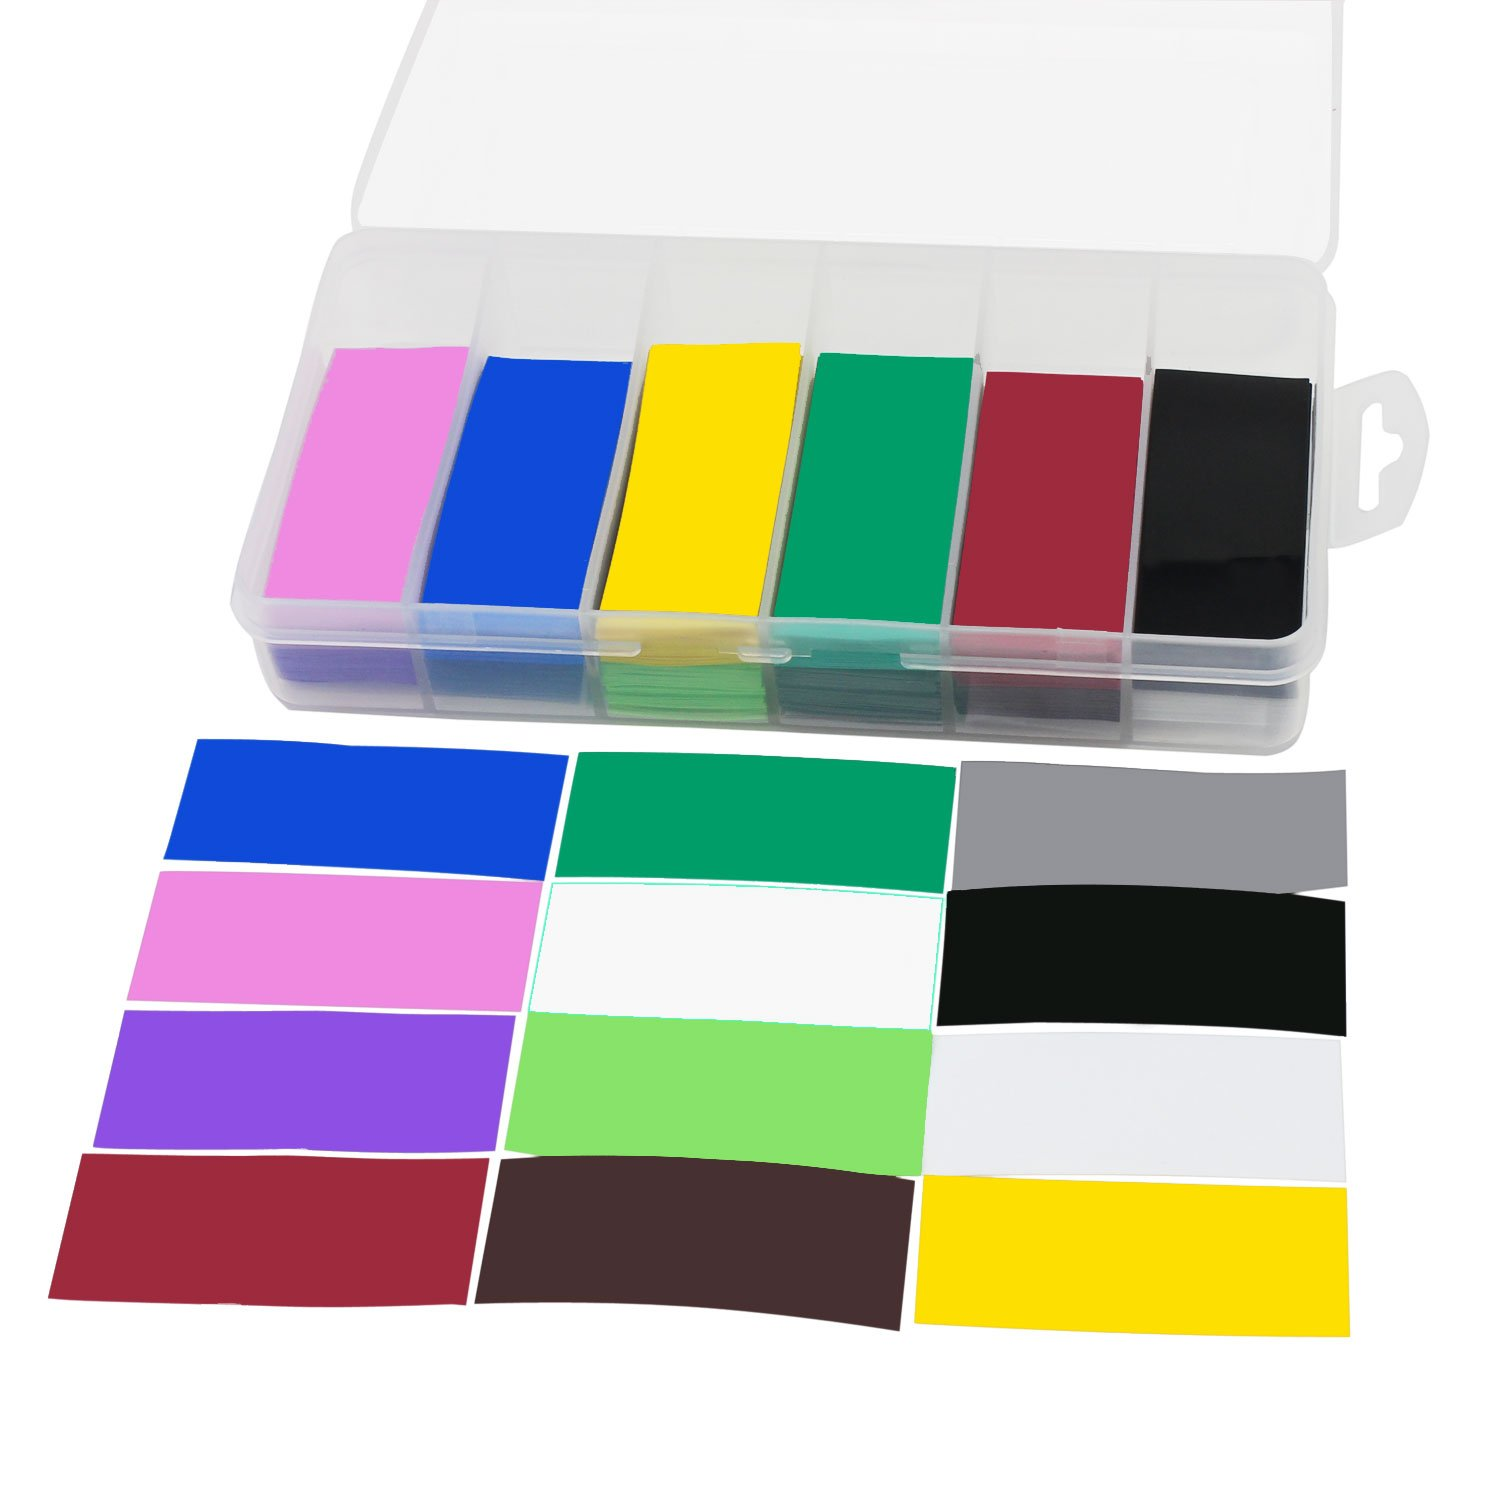 OCR Flat PVC Heat Shrink Tubing Battery Wrap for 1 x 18650 Battery 300PCS(29.5mm12 Colors) by OCR (Image #3)